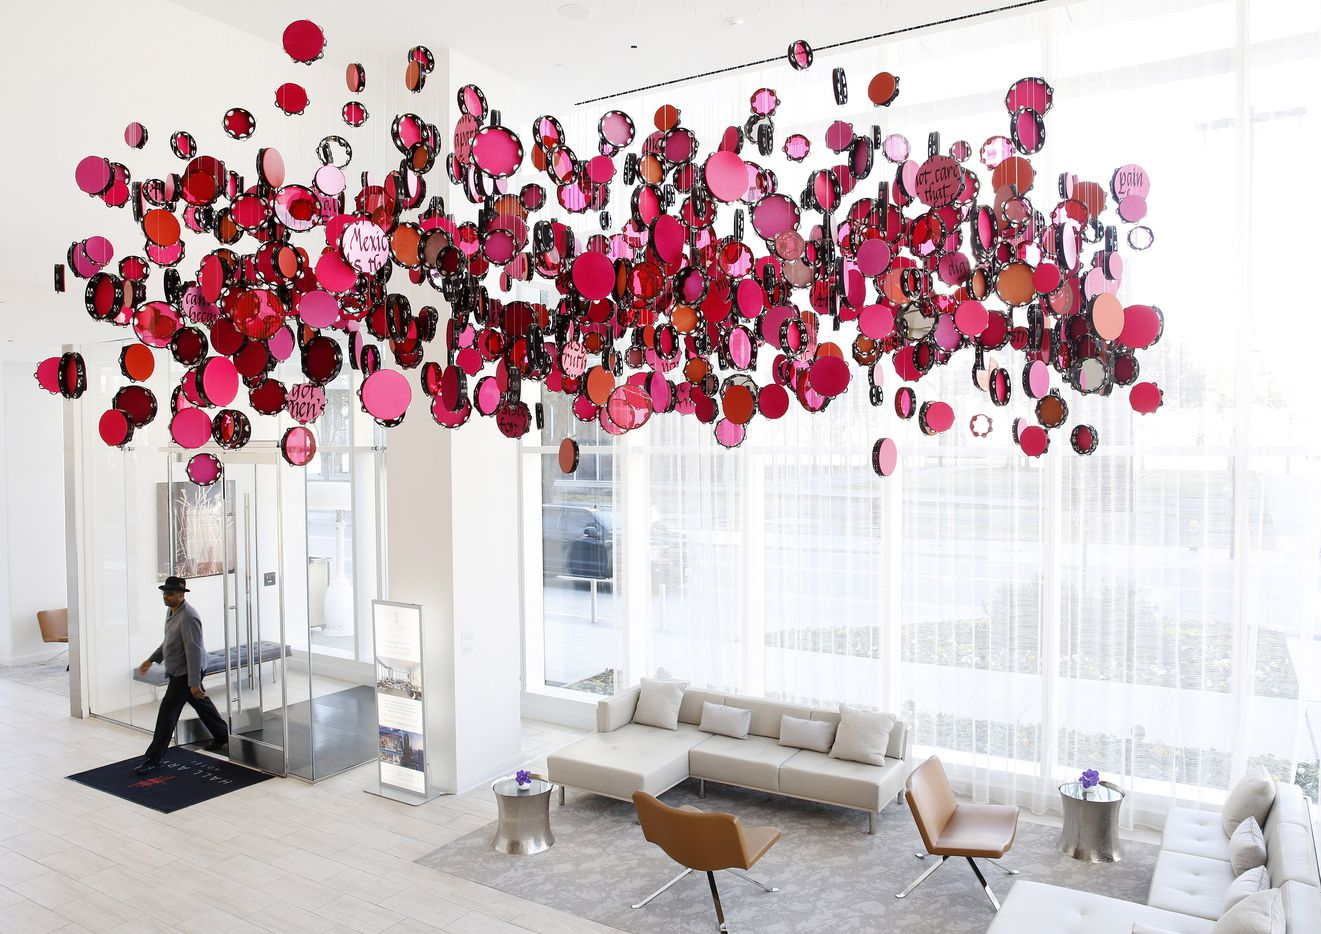 Resistance Reverb: Movements 1 is an art installation by artist Lava Thomas.  The colored Tamborine display hangs above the Hall Arts Hotel lobby in the Arts District of downtown Dallas, Friday, February 21, 2020.